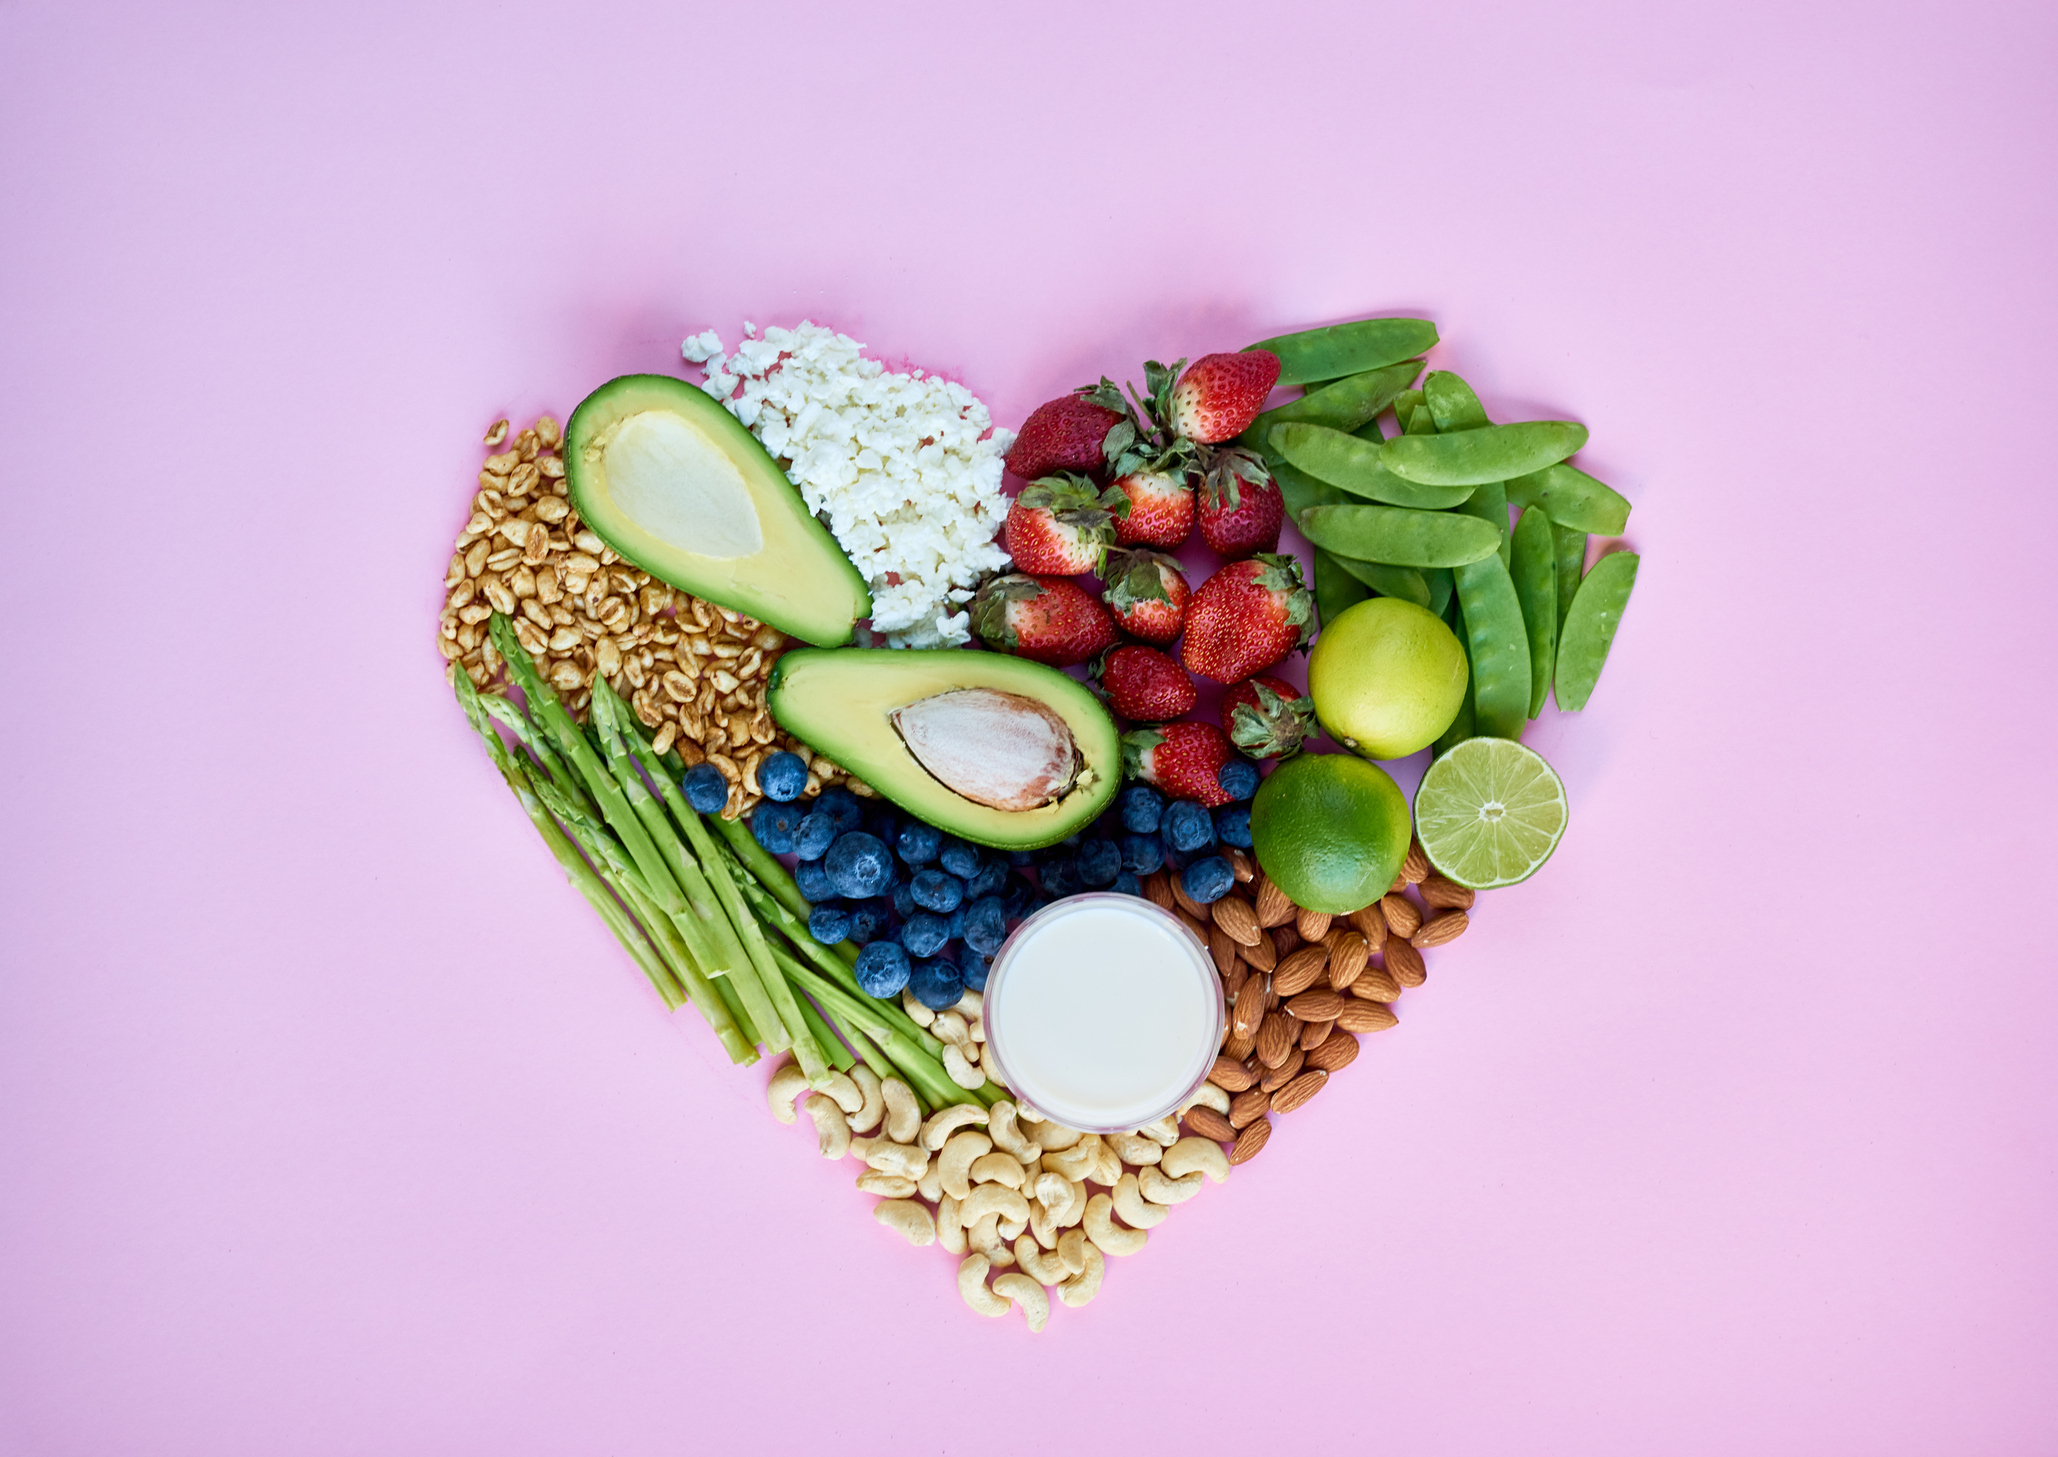 Nuts, berries, vegetables and fruits in shape of heart